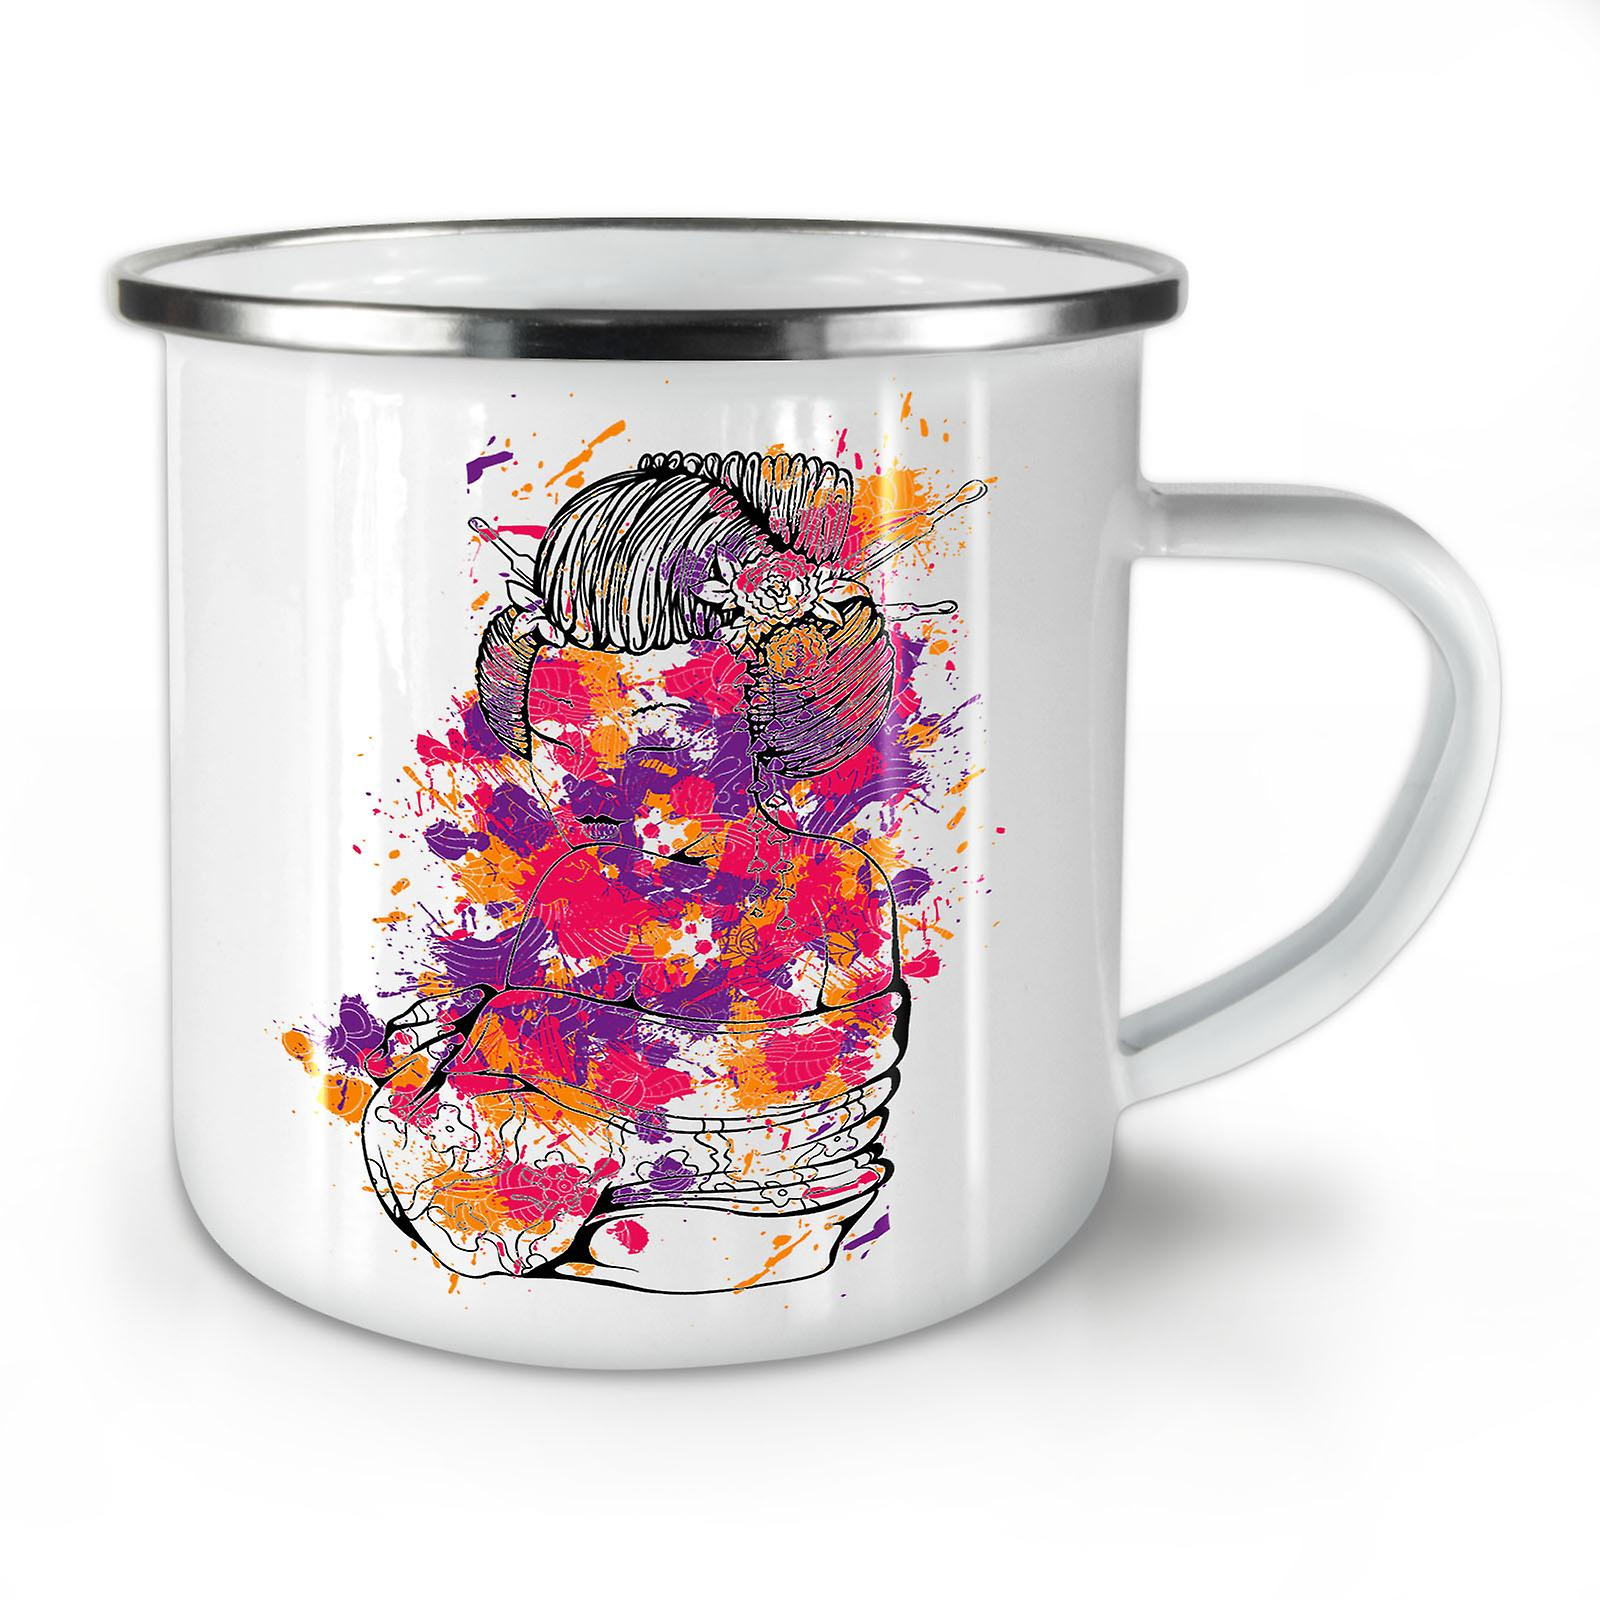 Whitetea Girl Enamel OzWellcoda New Sexy Art Coffee Mug10 qSzMLVpGjU